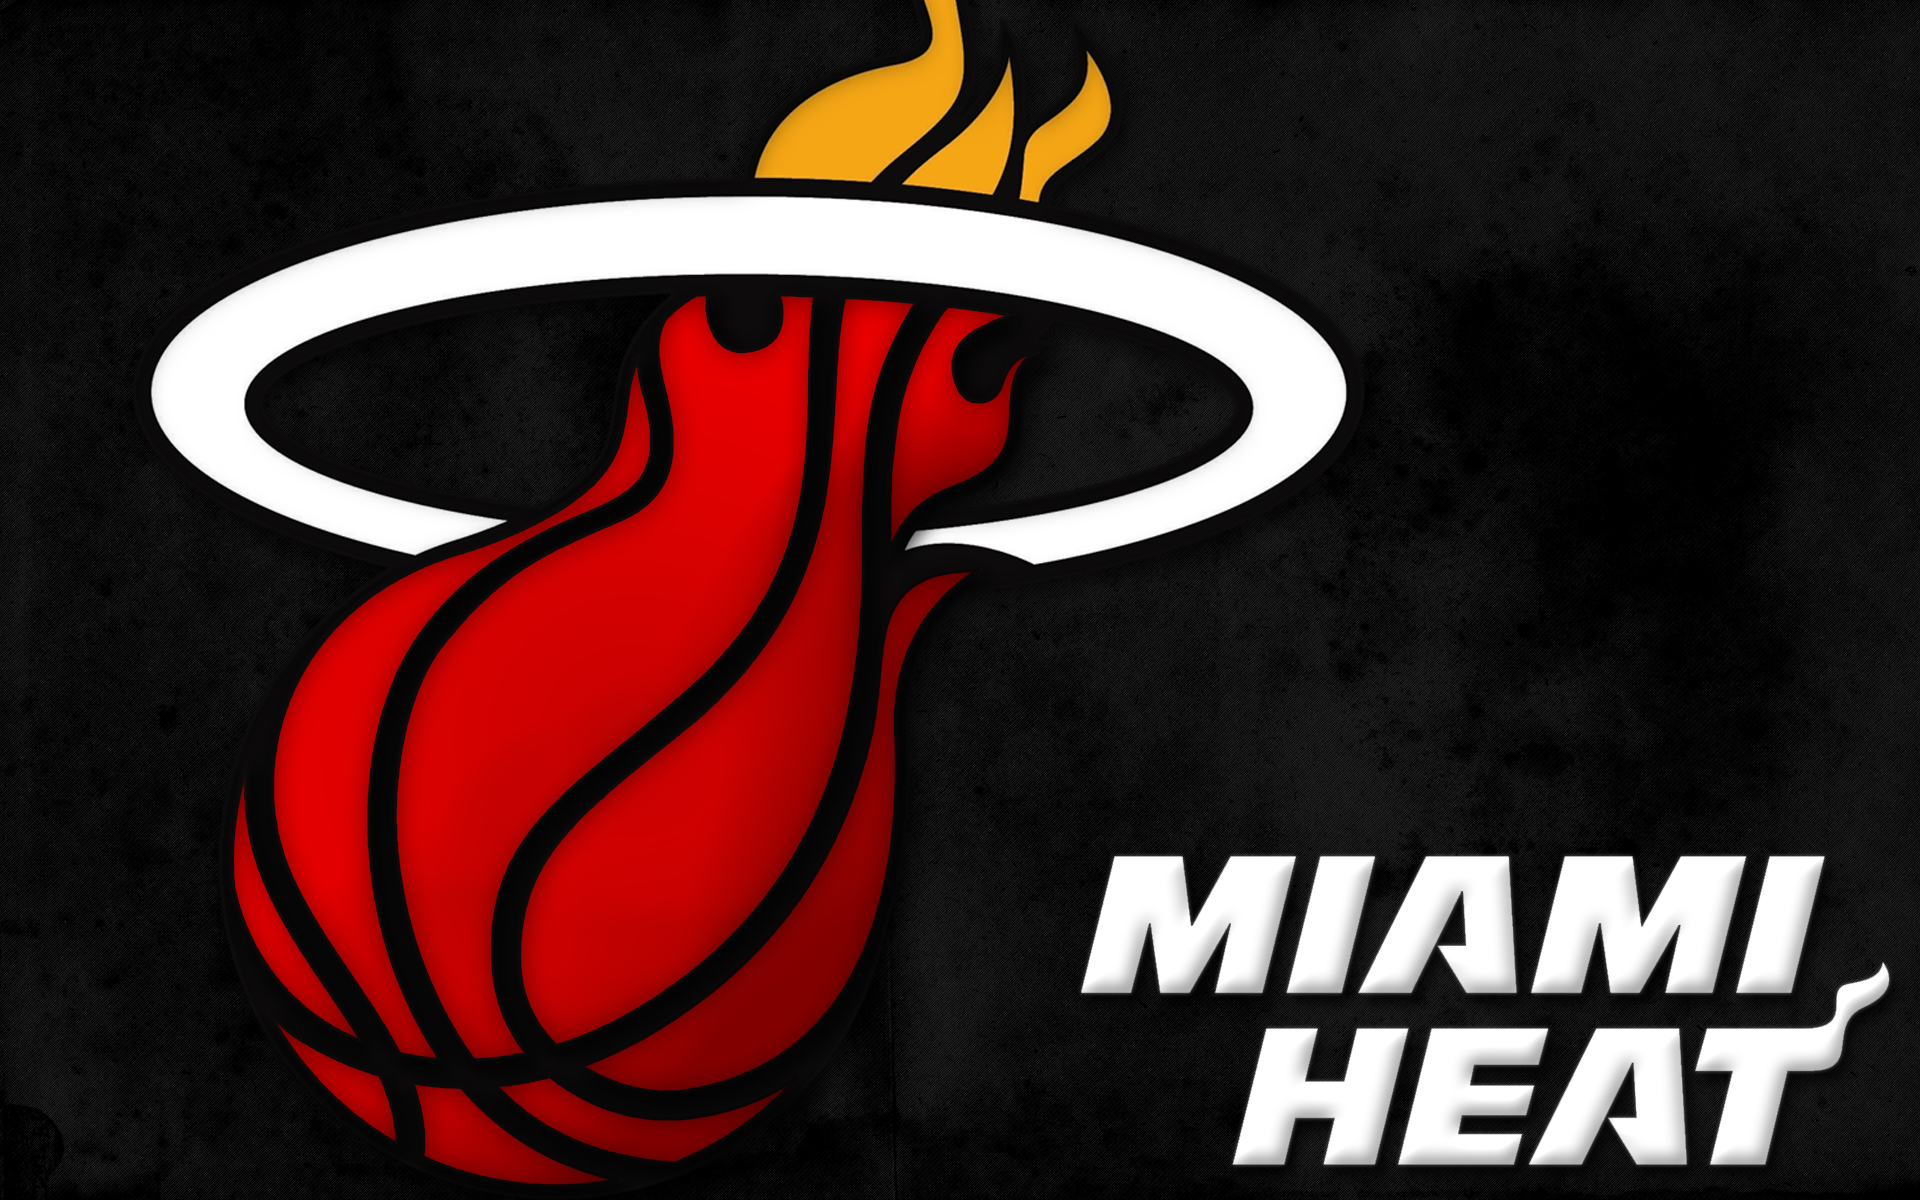 Miami heat wallpapers for desktop wallpapersafari miami heat logo wallpaper for desktop voltagebd Image collections